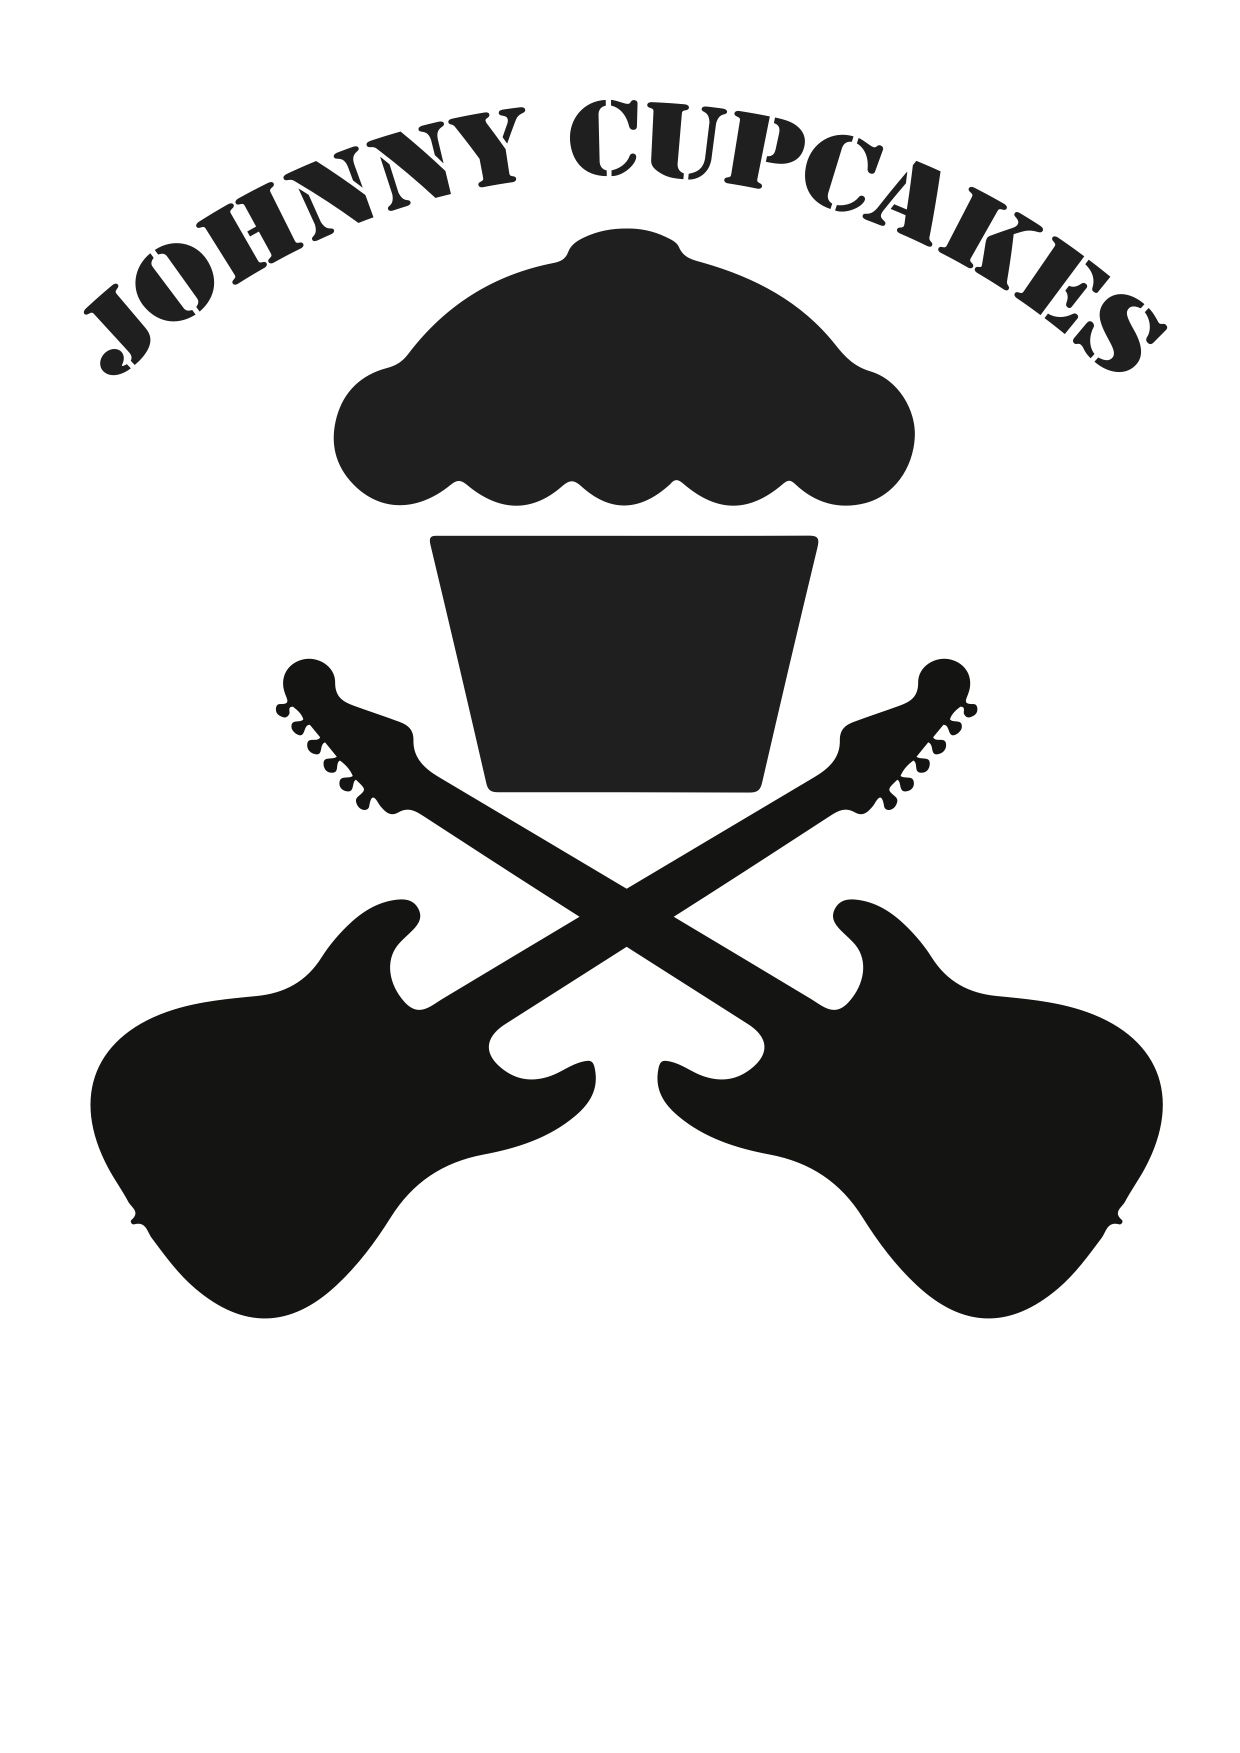 Tshirt For Johhny Cupcakes - image 1 - student project